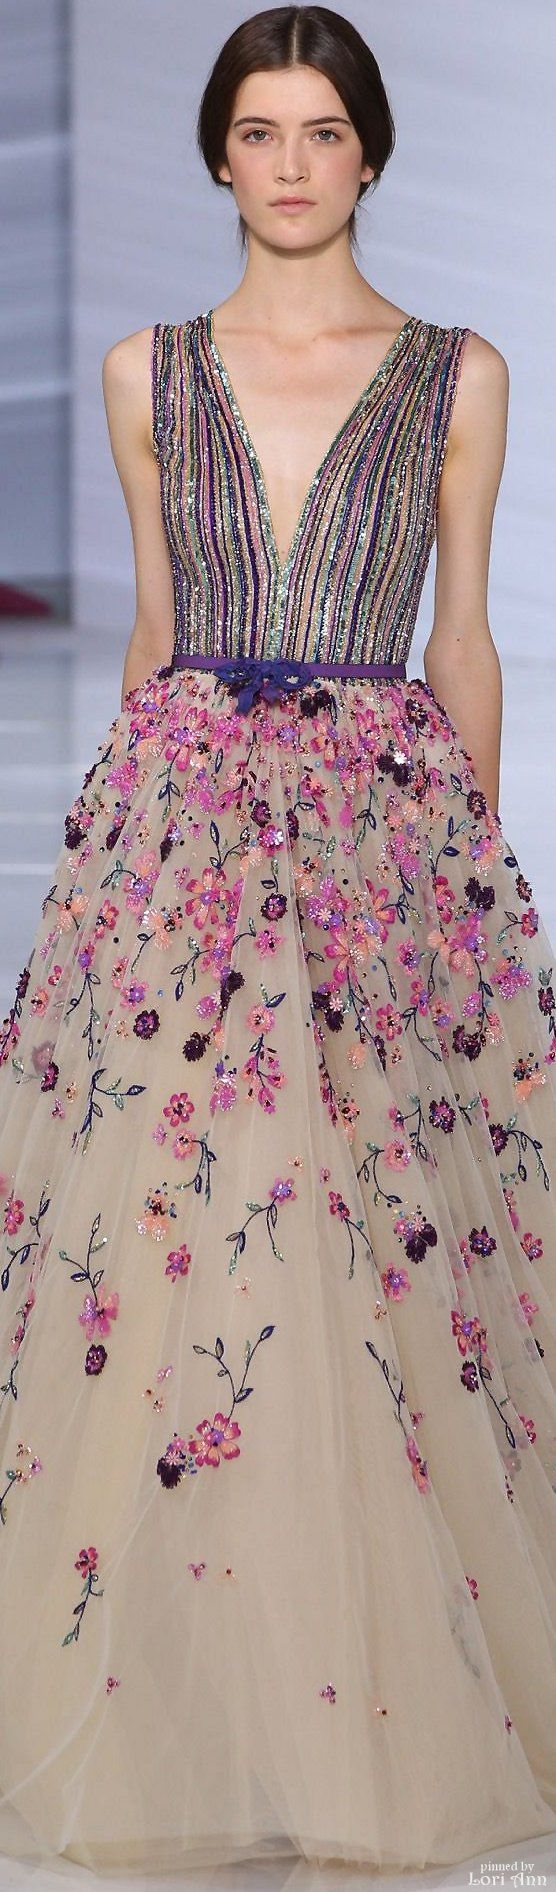 Georges Hobeika Couture, fall 2015.